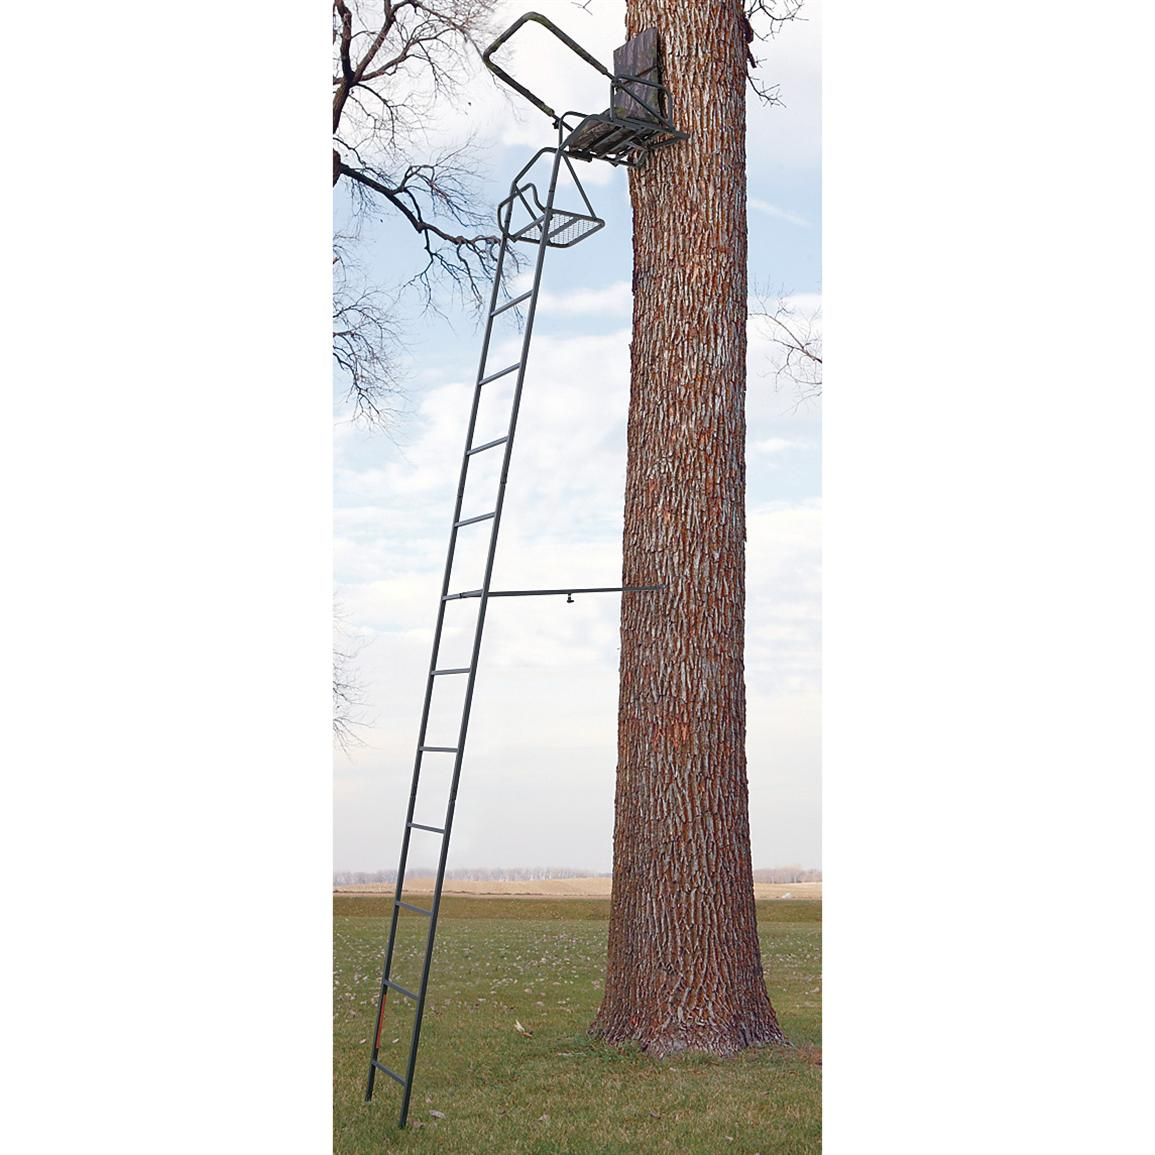 Guide Gear 16 foot Deluxe Ladder Tree Stand